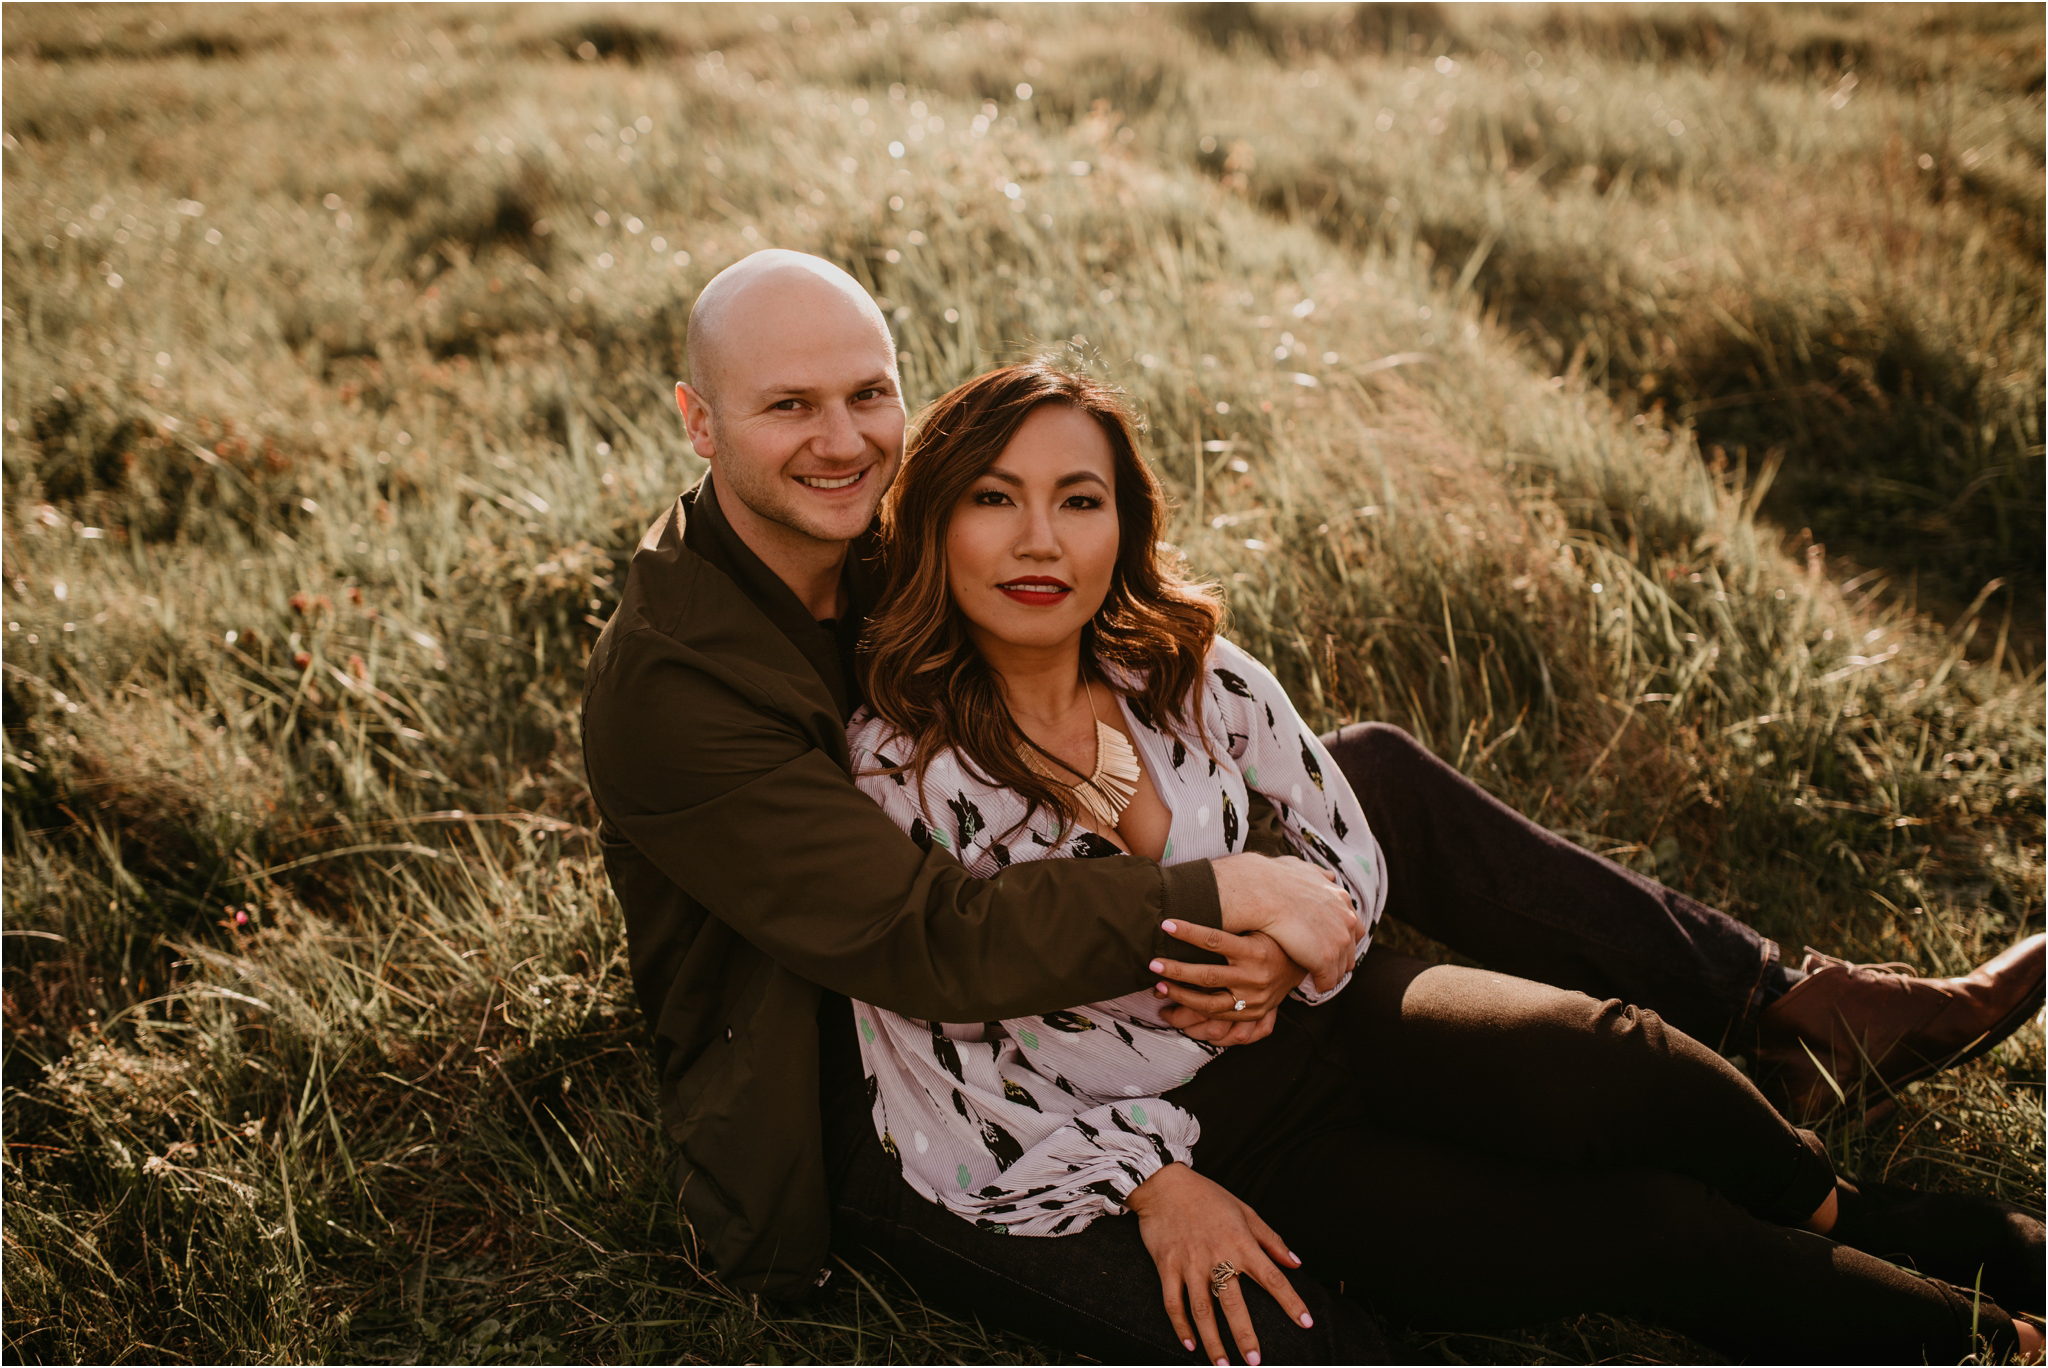 thuy-and-andrew-discovery-park-seattle-beach-engagement-session-018.jpg